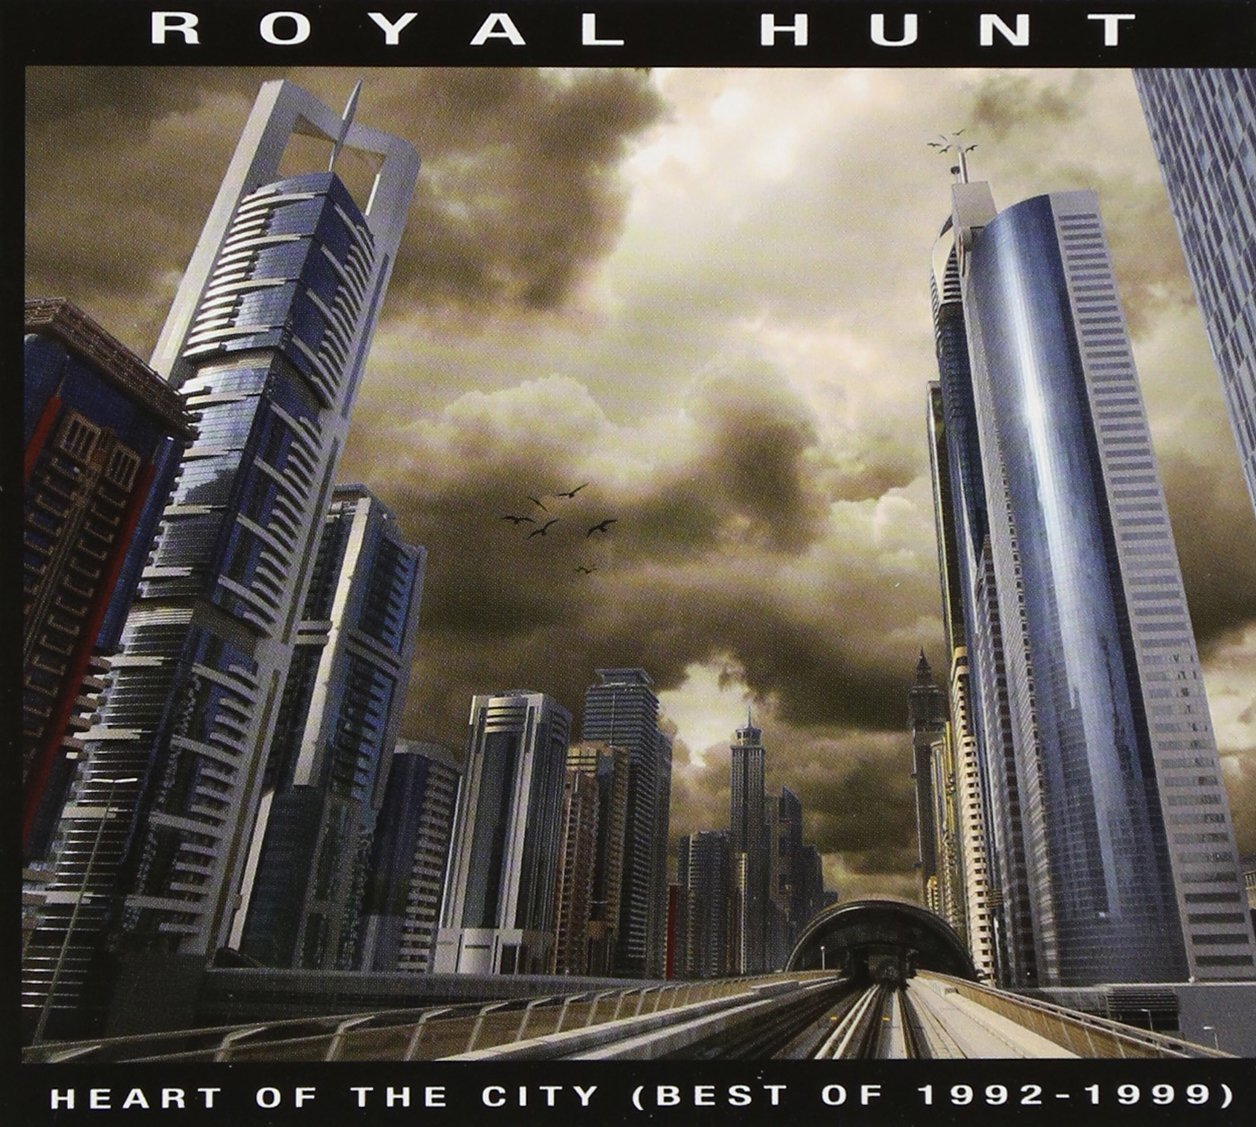 Royal Hunt : Heart of the City (Best of 1992-1999). Album Cover